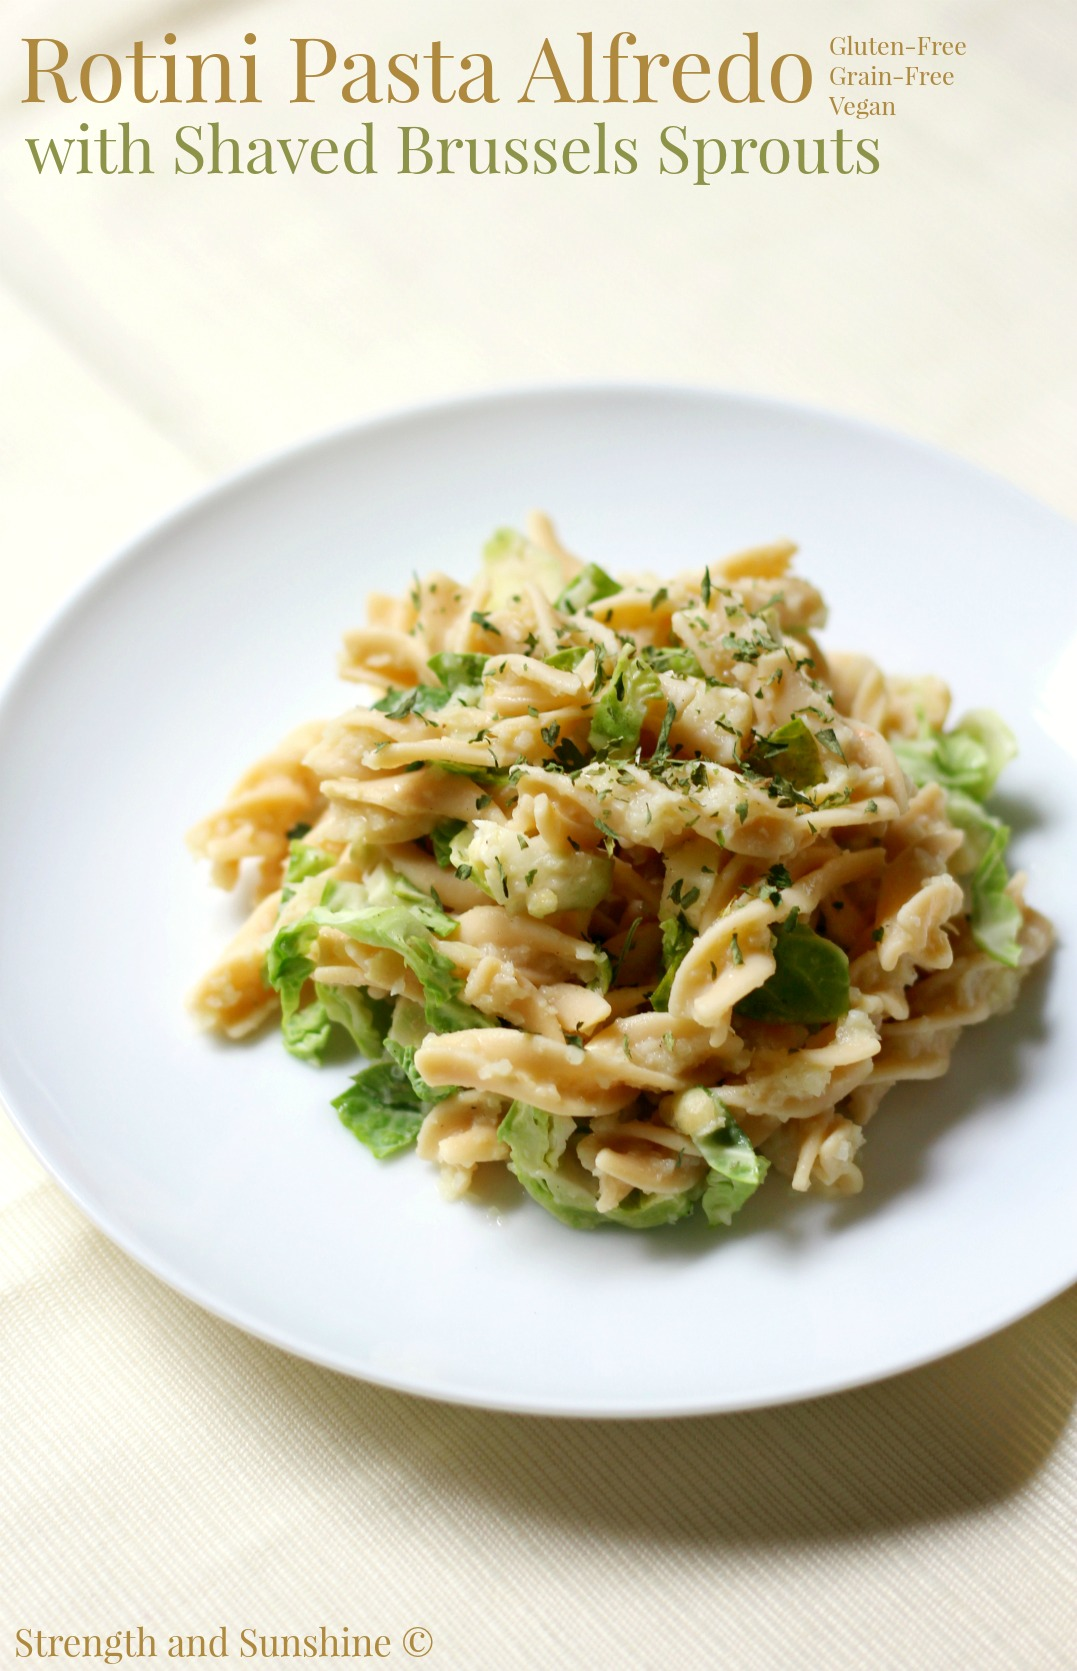 Rotini Pasta Alfredo with Shaved Brussels Sprouts | Strength and Sunshine @RebeccaGF666 A healthy veggie-packed, grain-free rotini pasta Alfredo that you won't know is gluten-free or vegan! The ultimate comfort food dinner recipe you can make to nourish the whole family (and get them to eat brussels sprouts)!